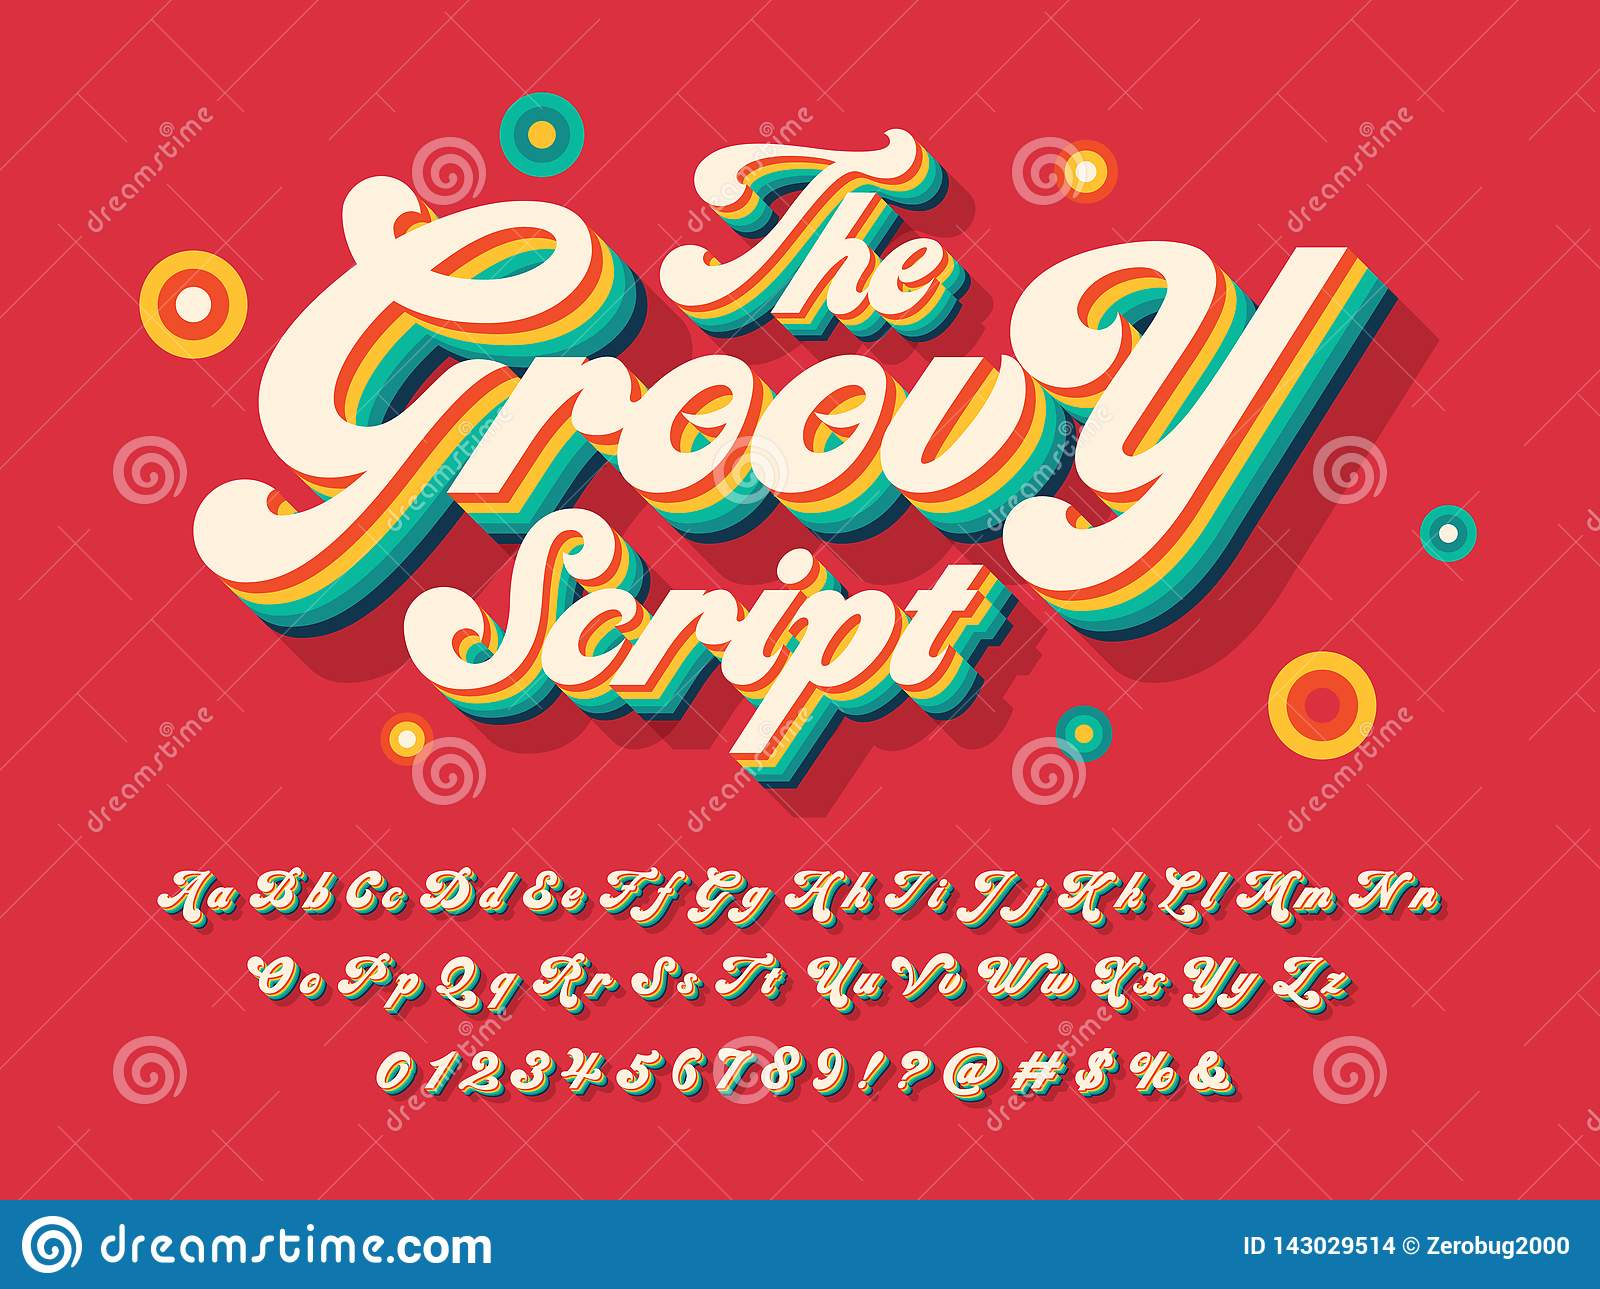 Groovy font stock vector  Illustration of graphic, design